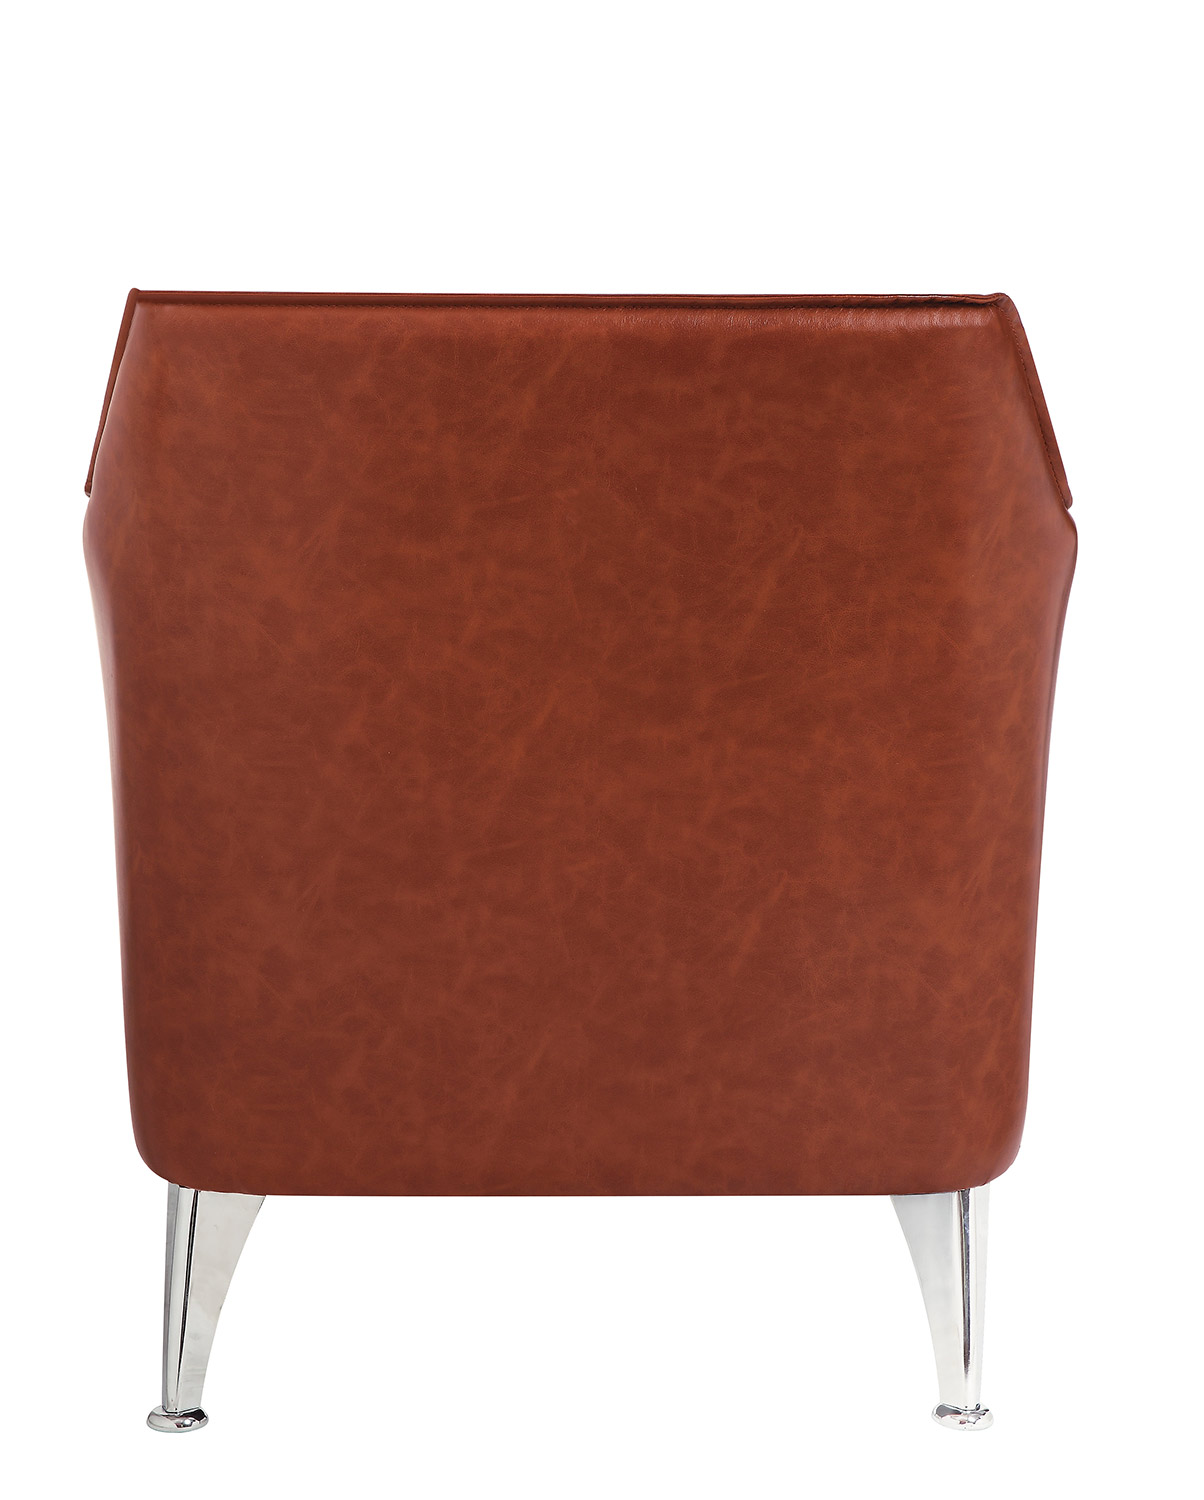 Homelegance Basseri Accent Chair - Brown